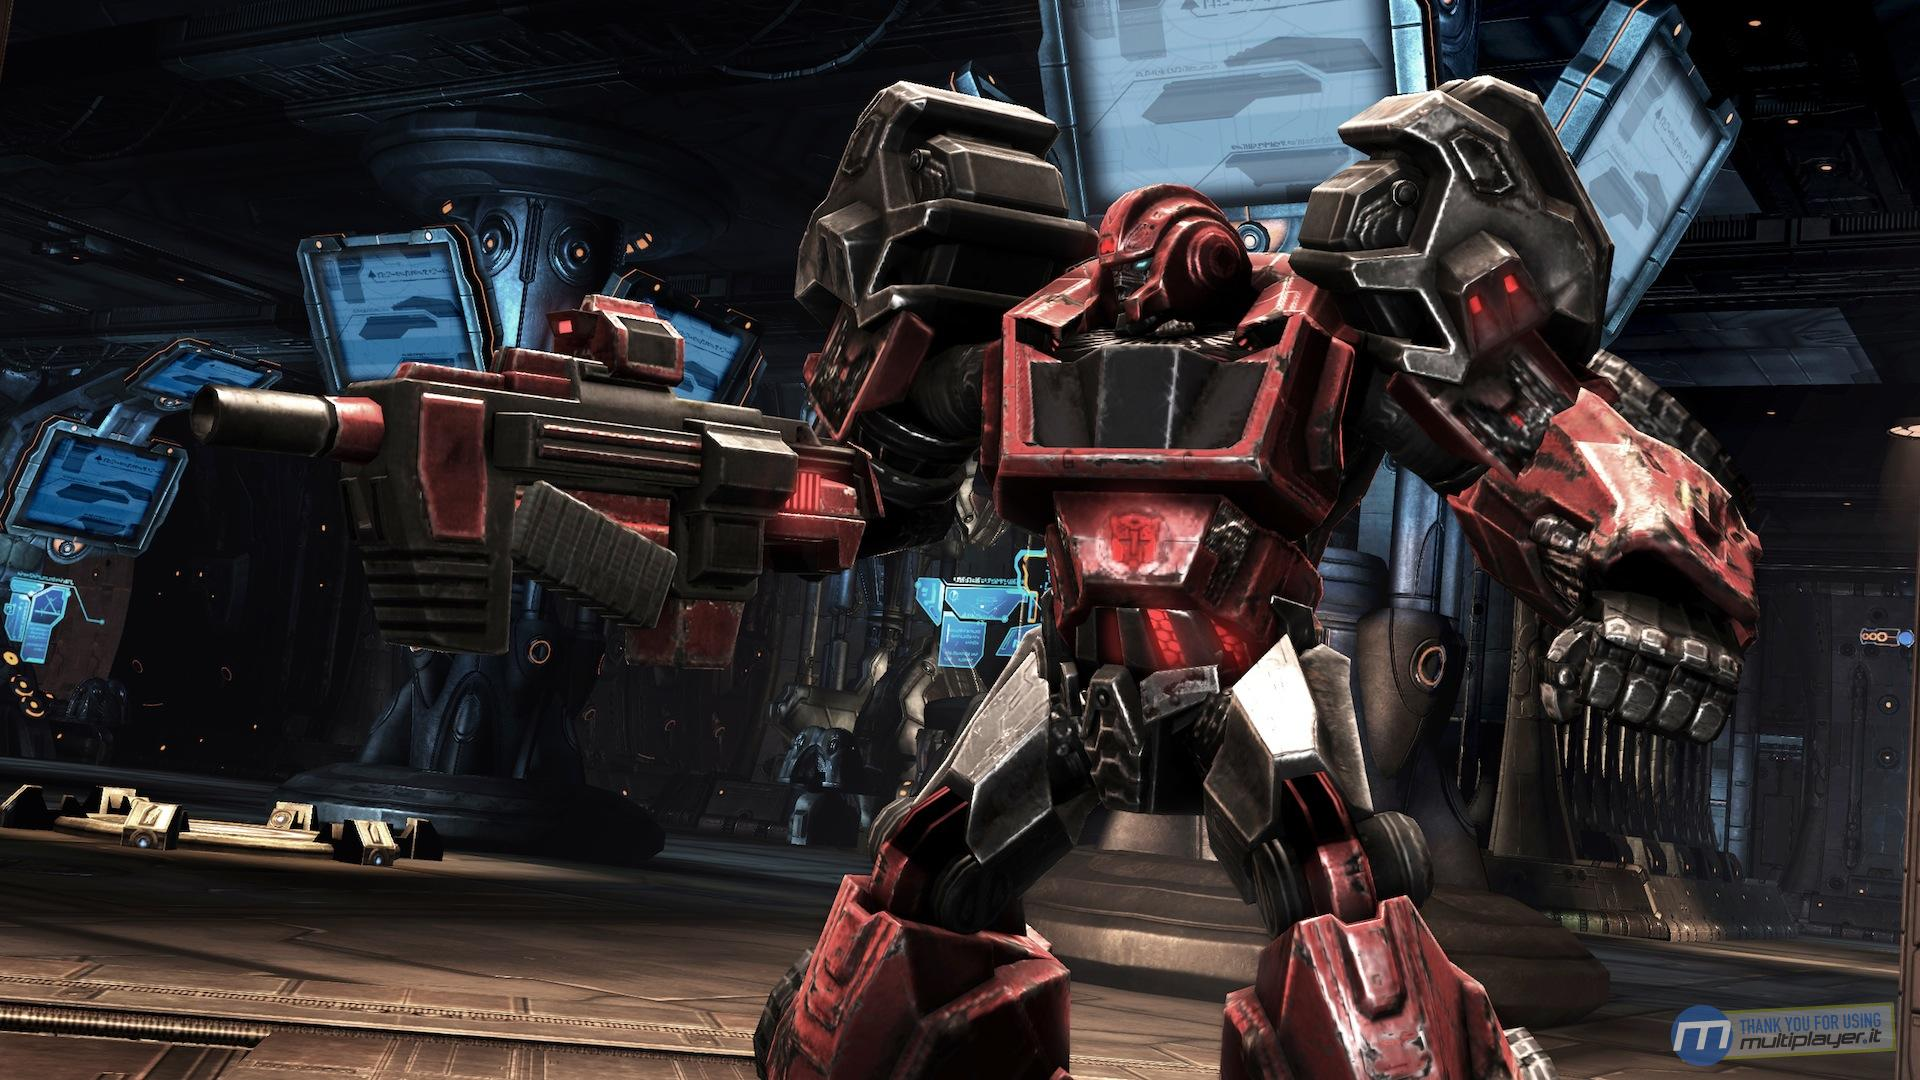 Transformers Fall Of Cybertron Wallpaper New Transformers War For Cybertron Screenshots